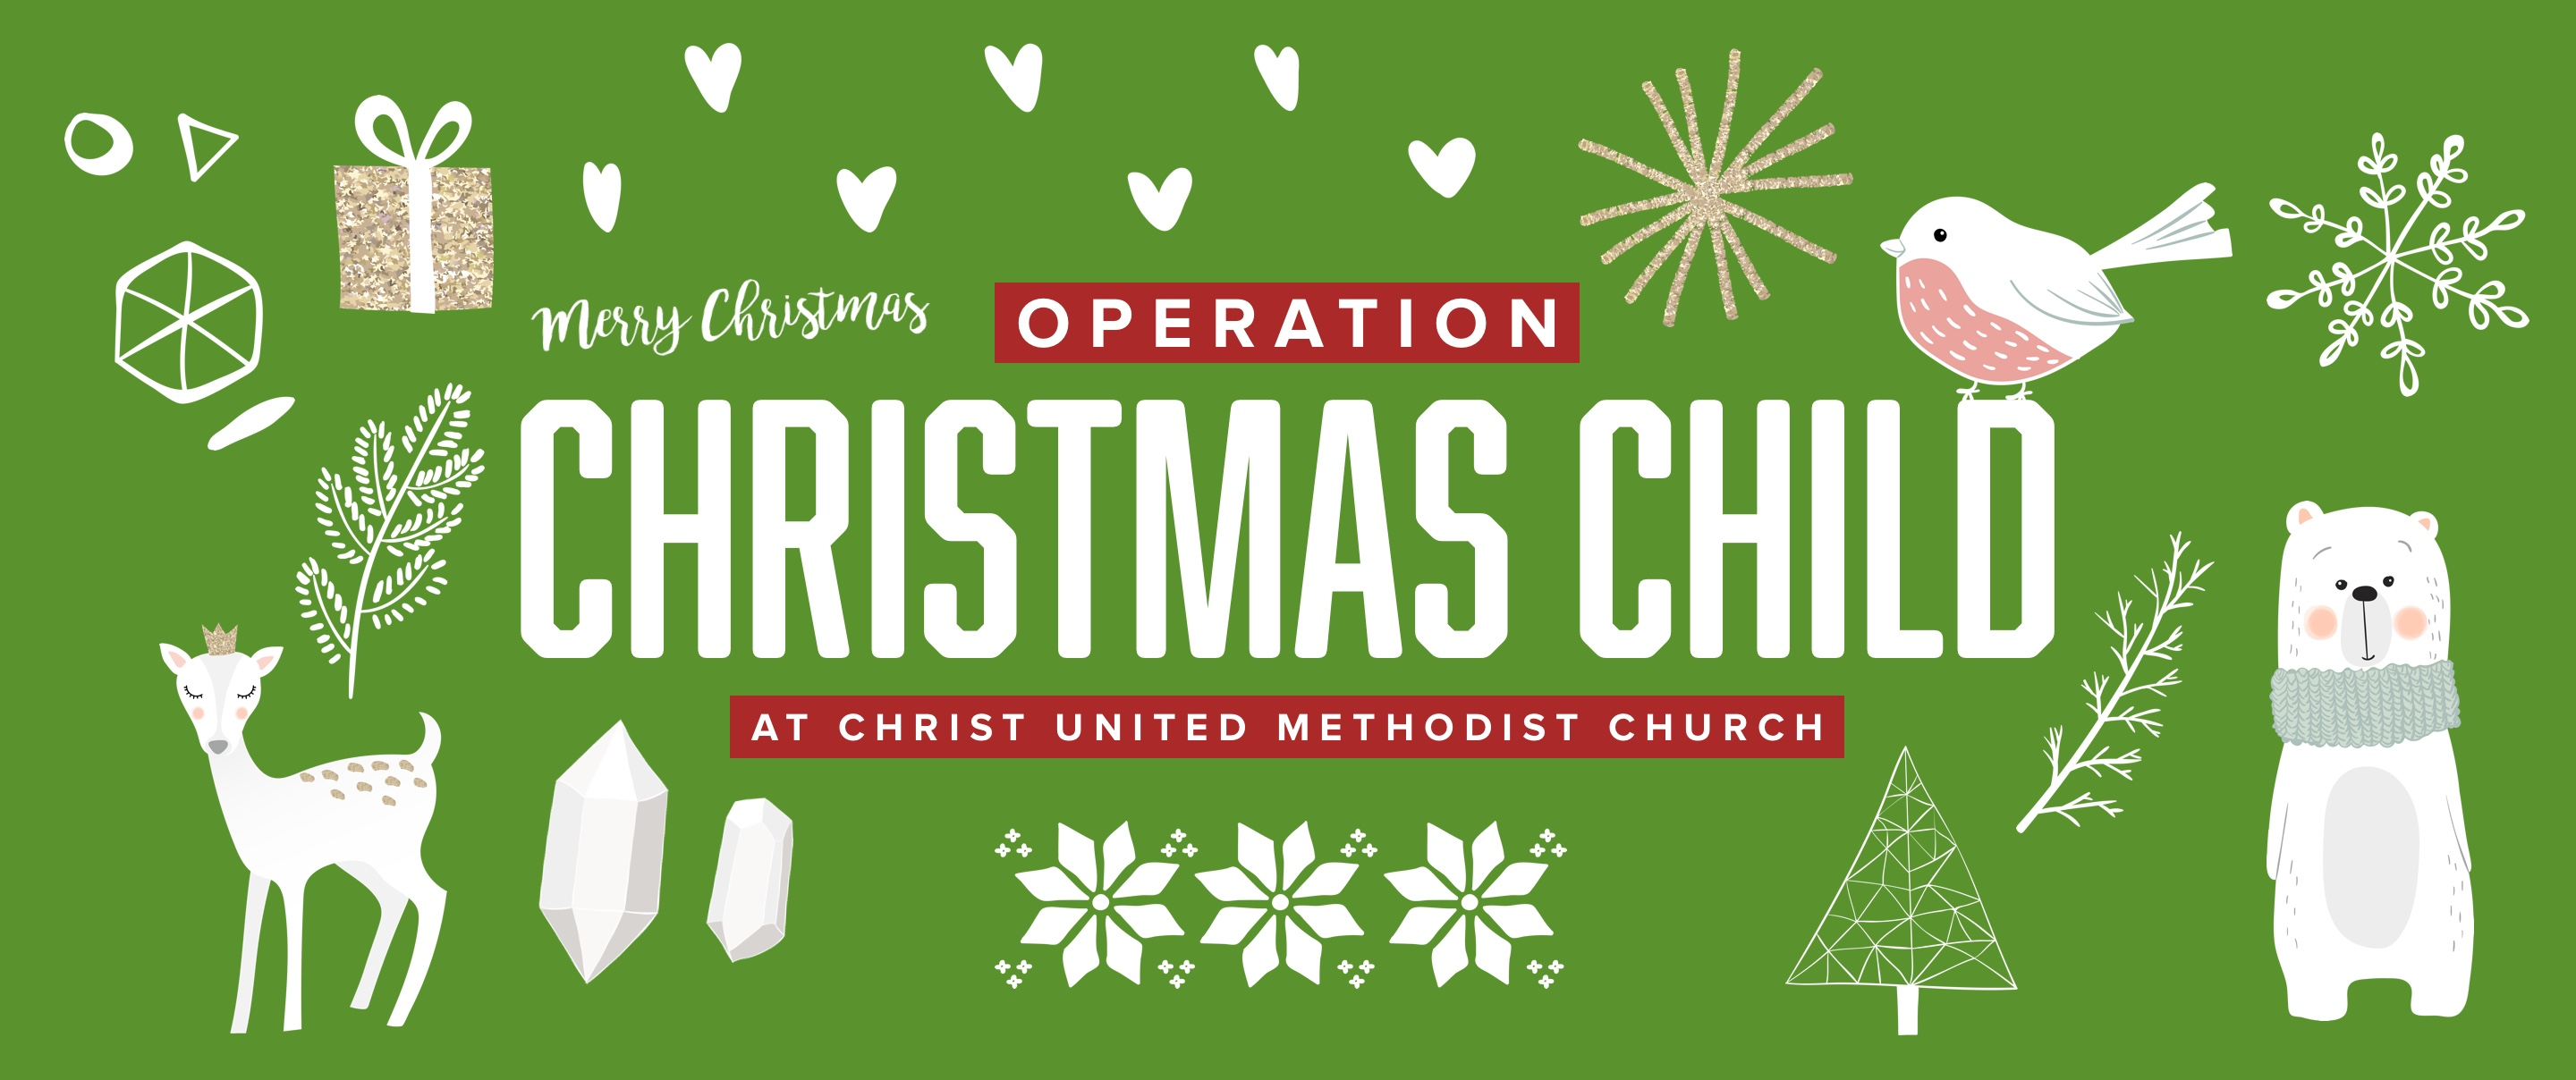 Operation Christmas Child at Christ United Methodist Church